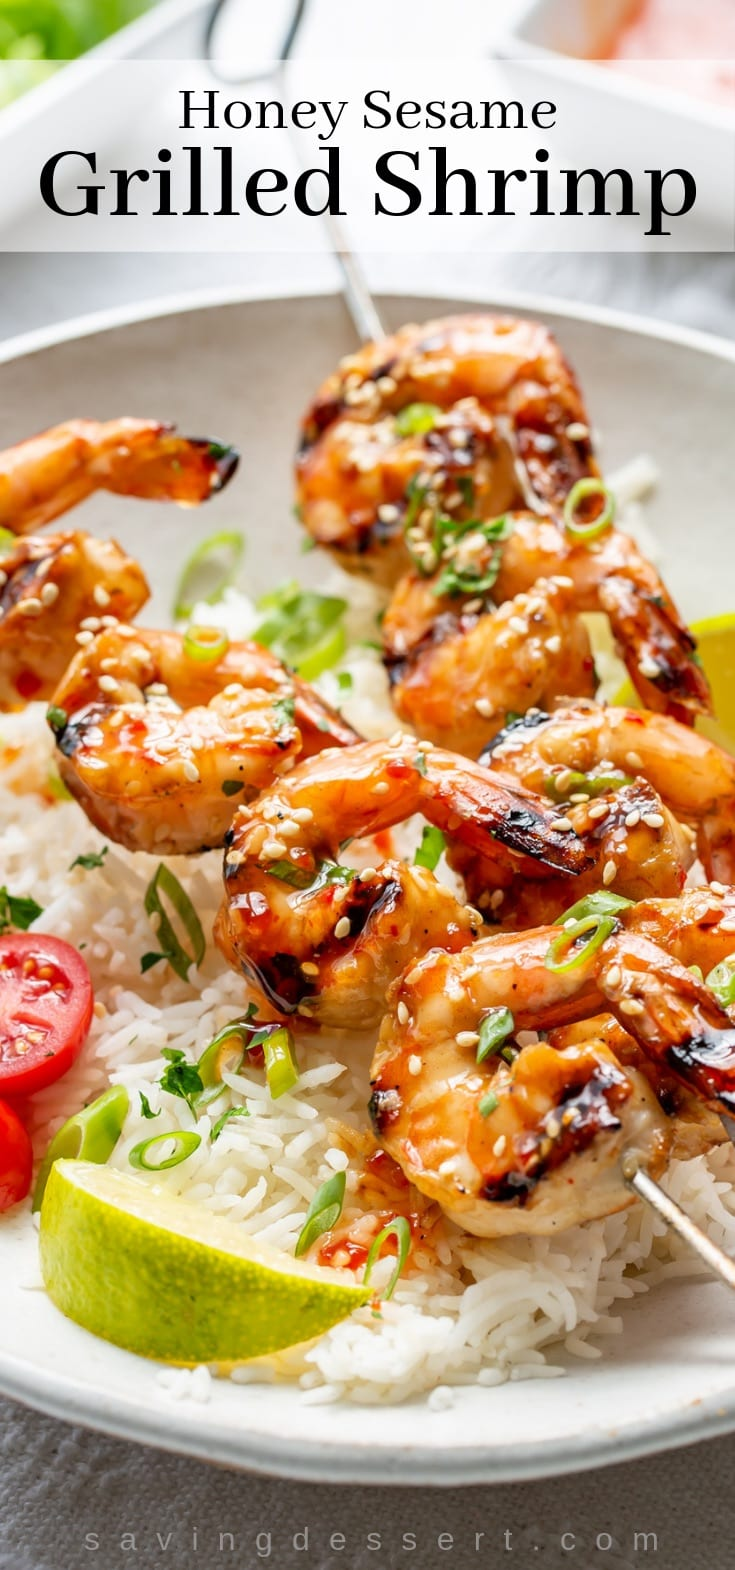 Honey Sesame Grilled Shrimp on skewers over a bowl of rice with lime wedges and sliced tomatoes